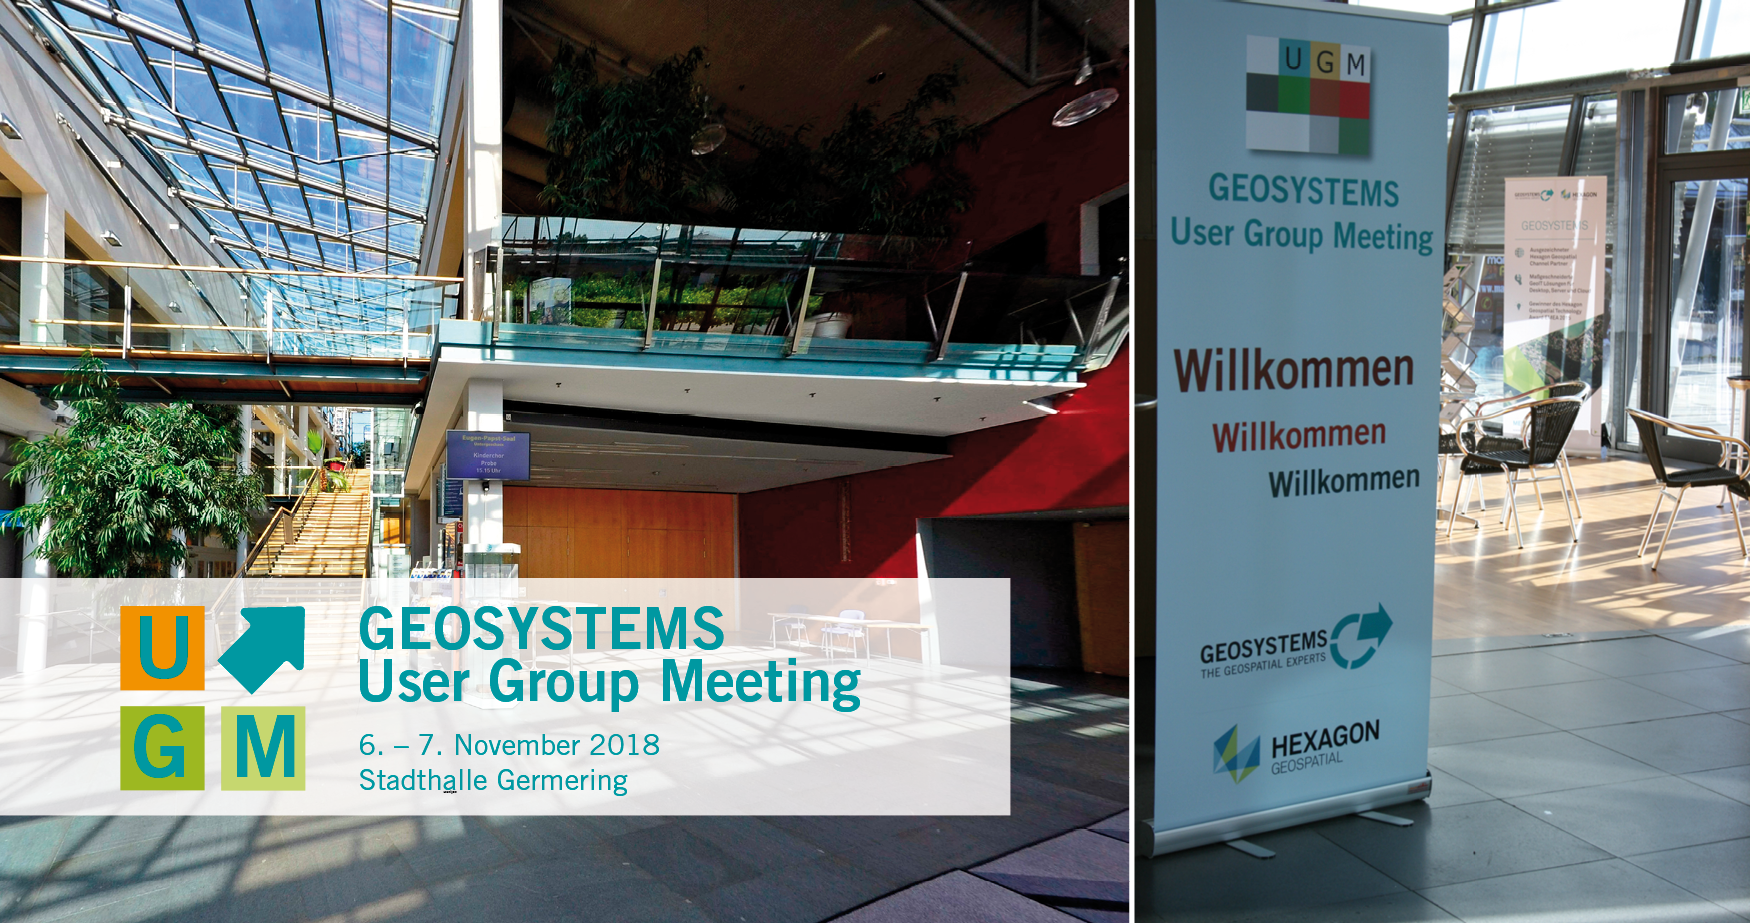 Bildergebnis für geosystems user group meeting 2018